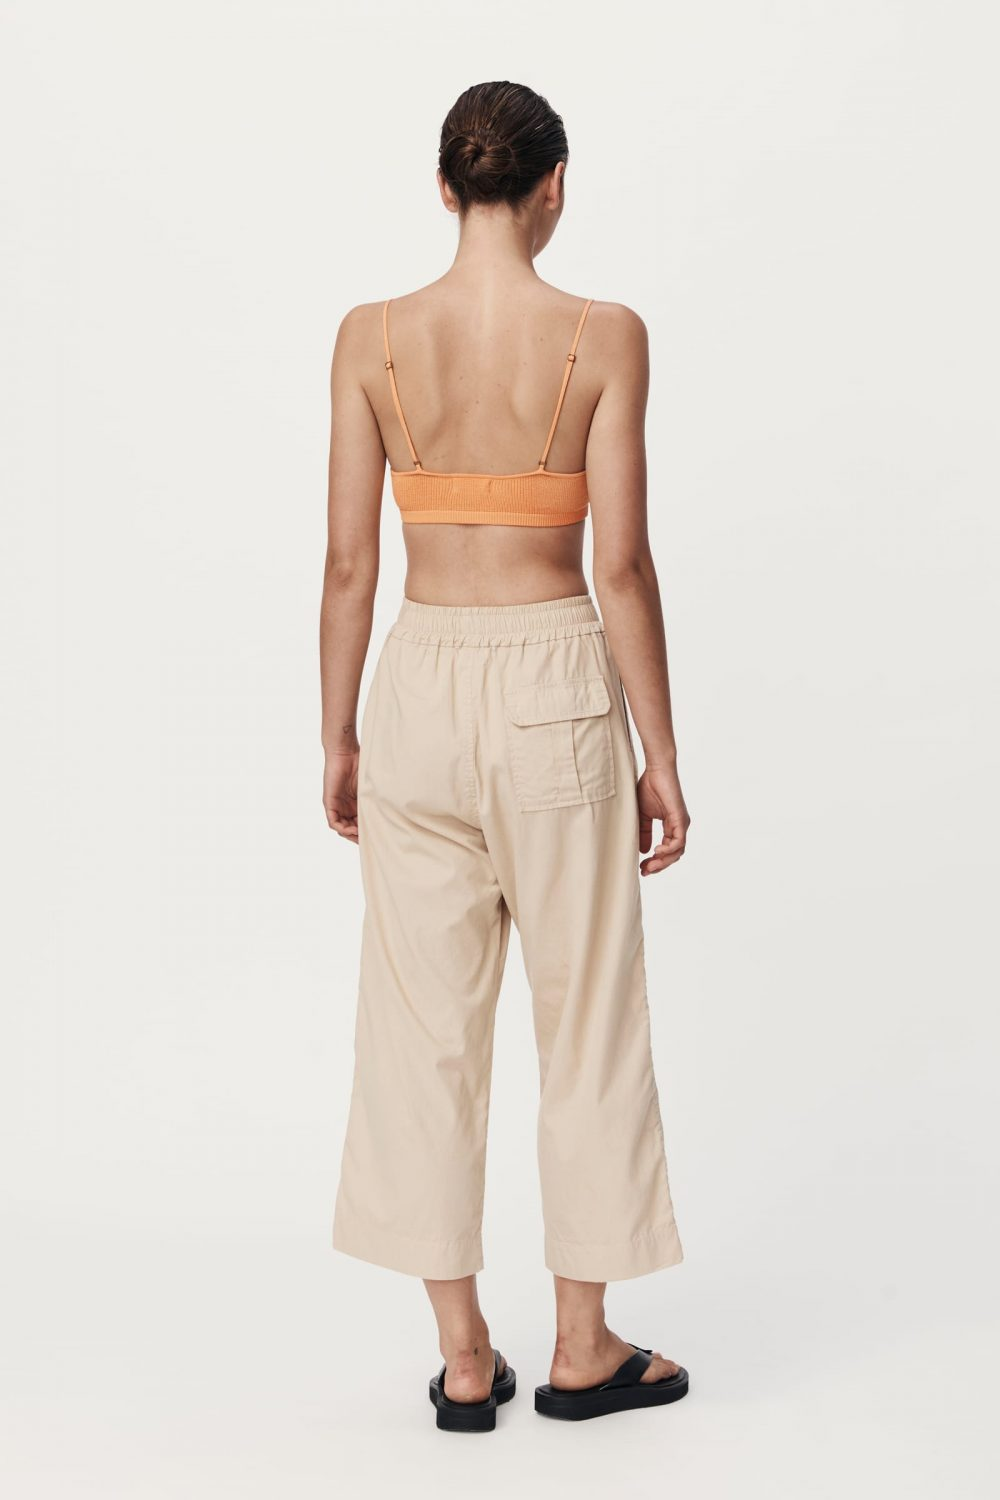 Rowie The Label Rs21 Popf Phillip Organic Pant Fawn Spring21 0144